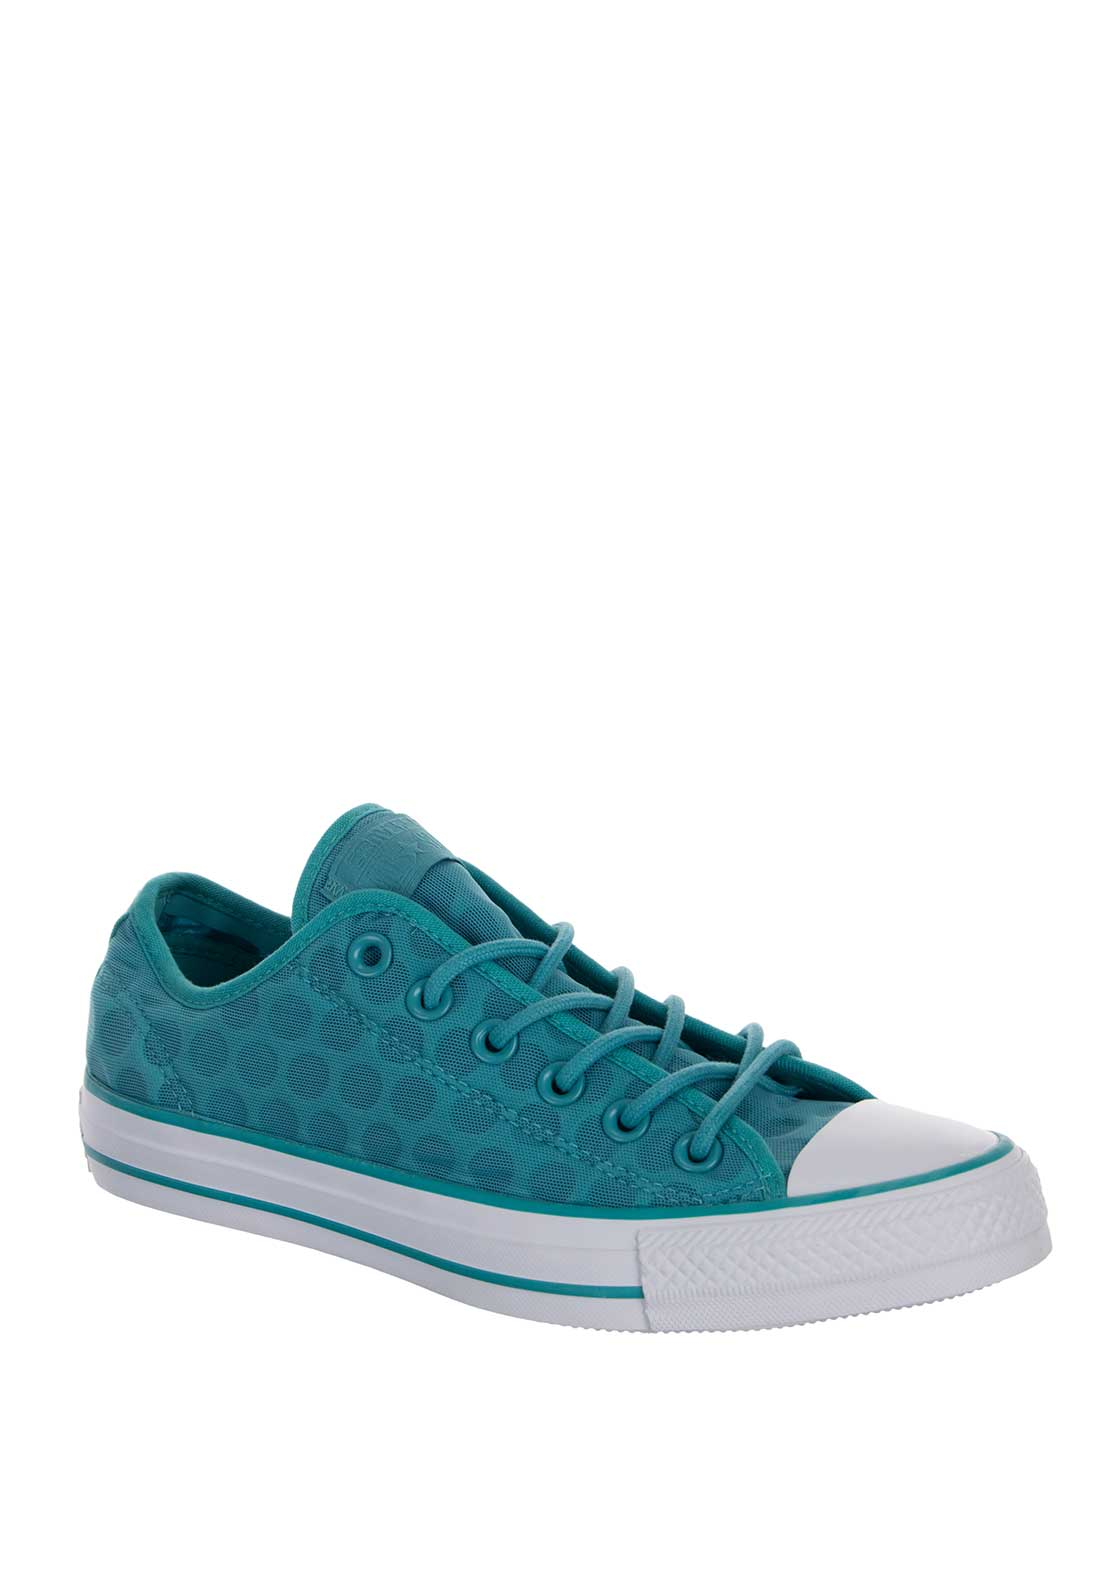 Converse Womens Chuck Taylor All Star Trainers, Aqua